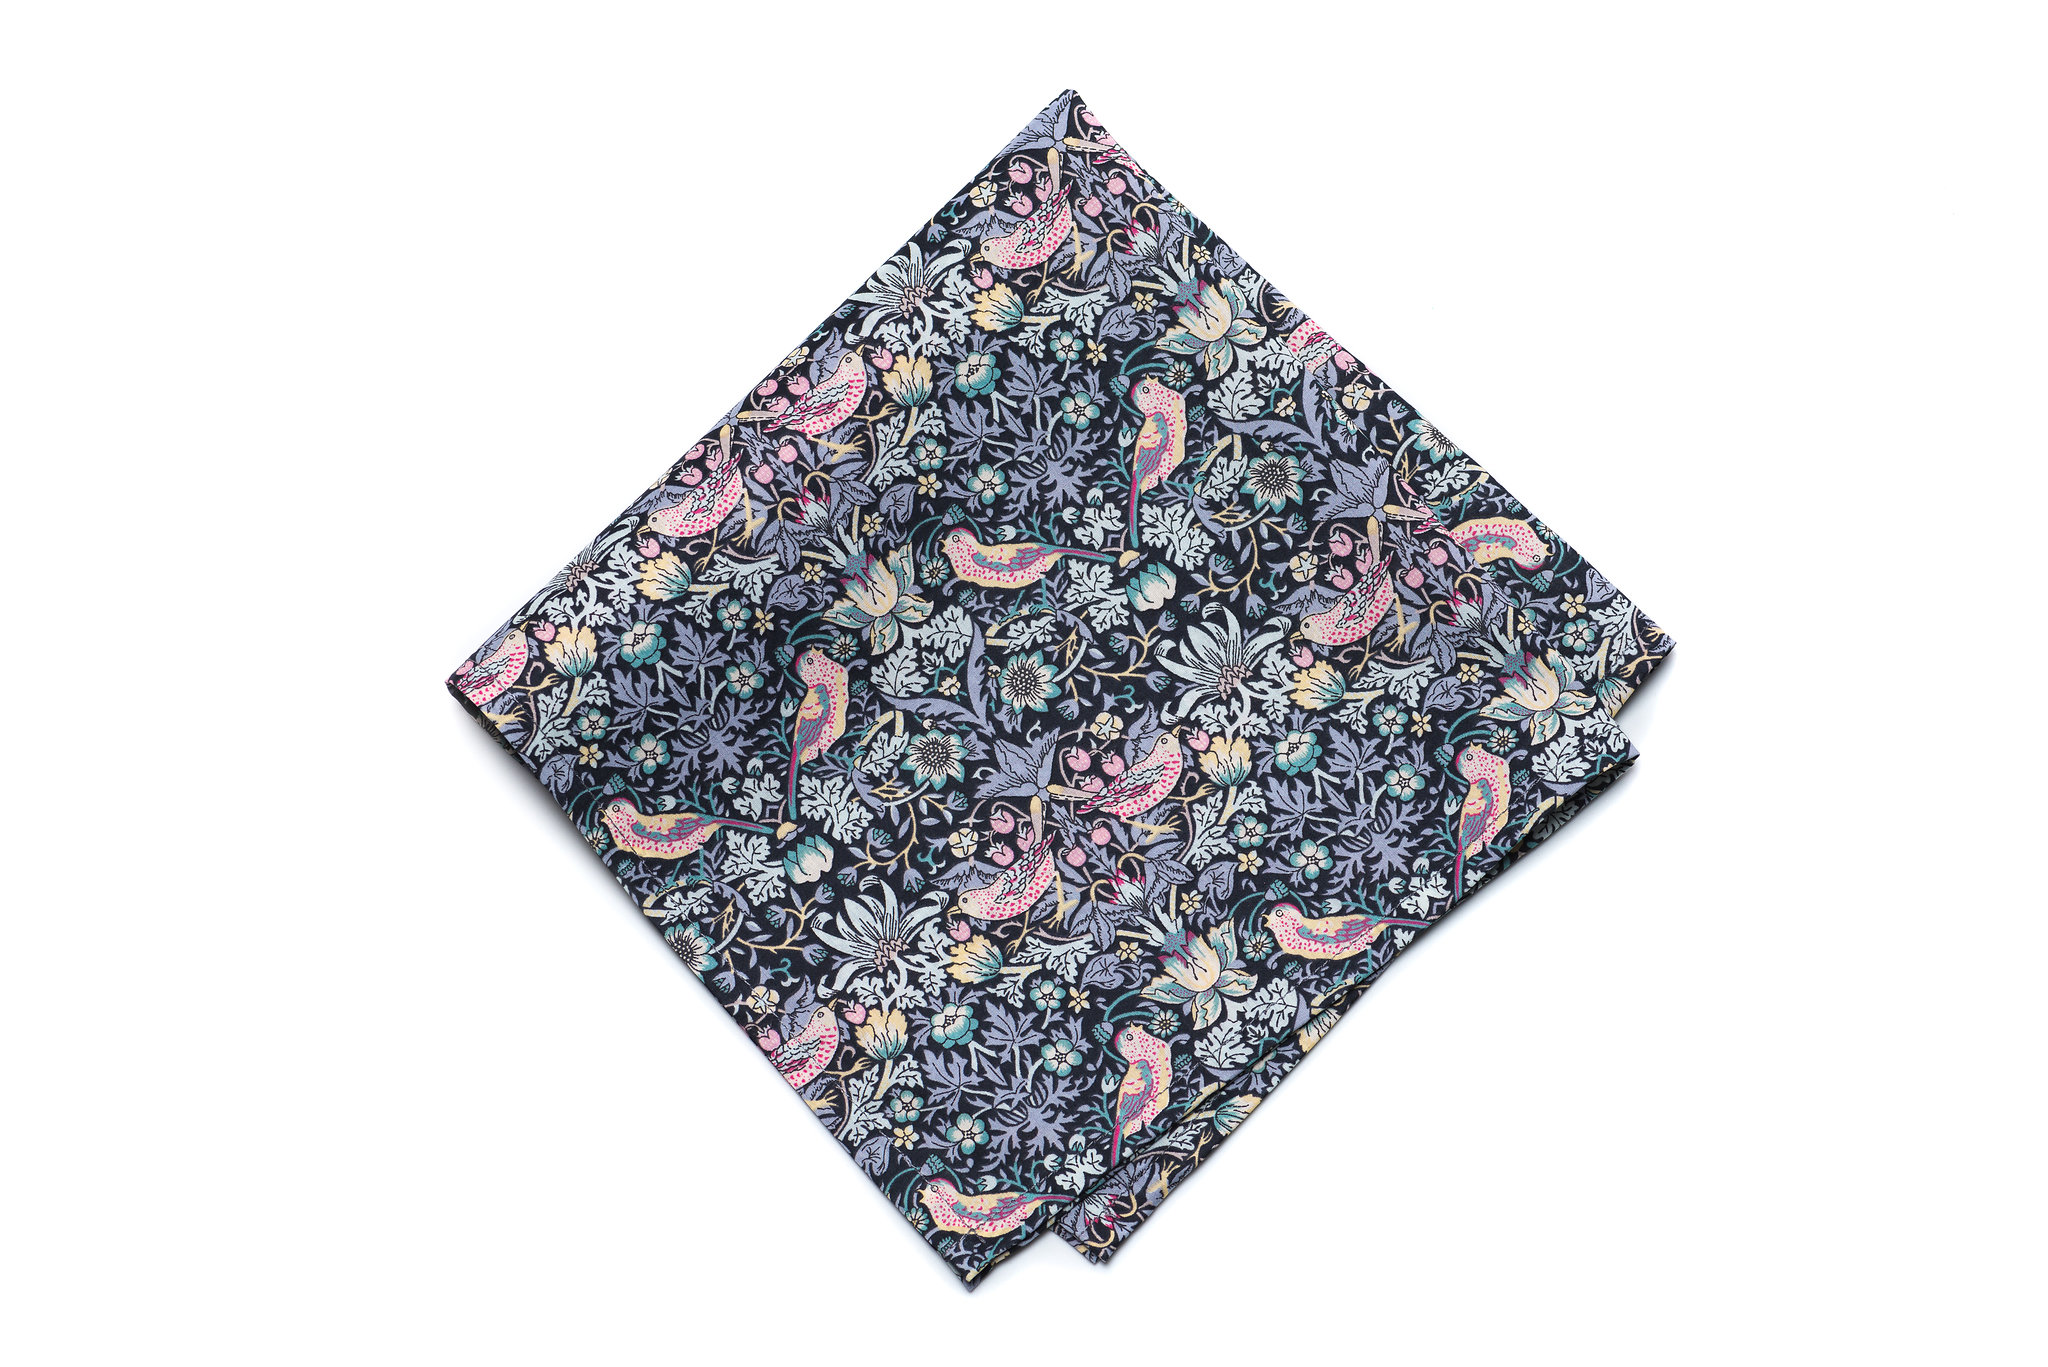 POMP AND CEREMONY  POCKET SQUARES - It's all in the details....We love the patterns and heritage of Liberty Prints and the way Pomp and Ceremony has used them in these great pocket squares. Made of soft easy to wear cotton lawn fabrication these pocket squares are a great staple for completing your look.